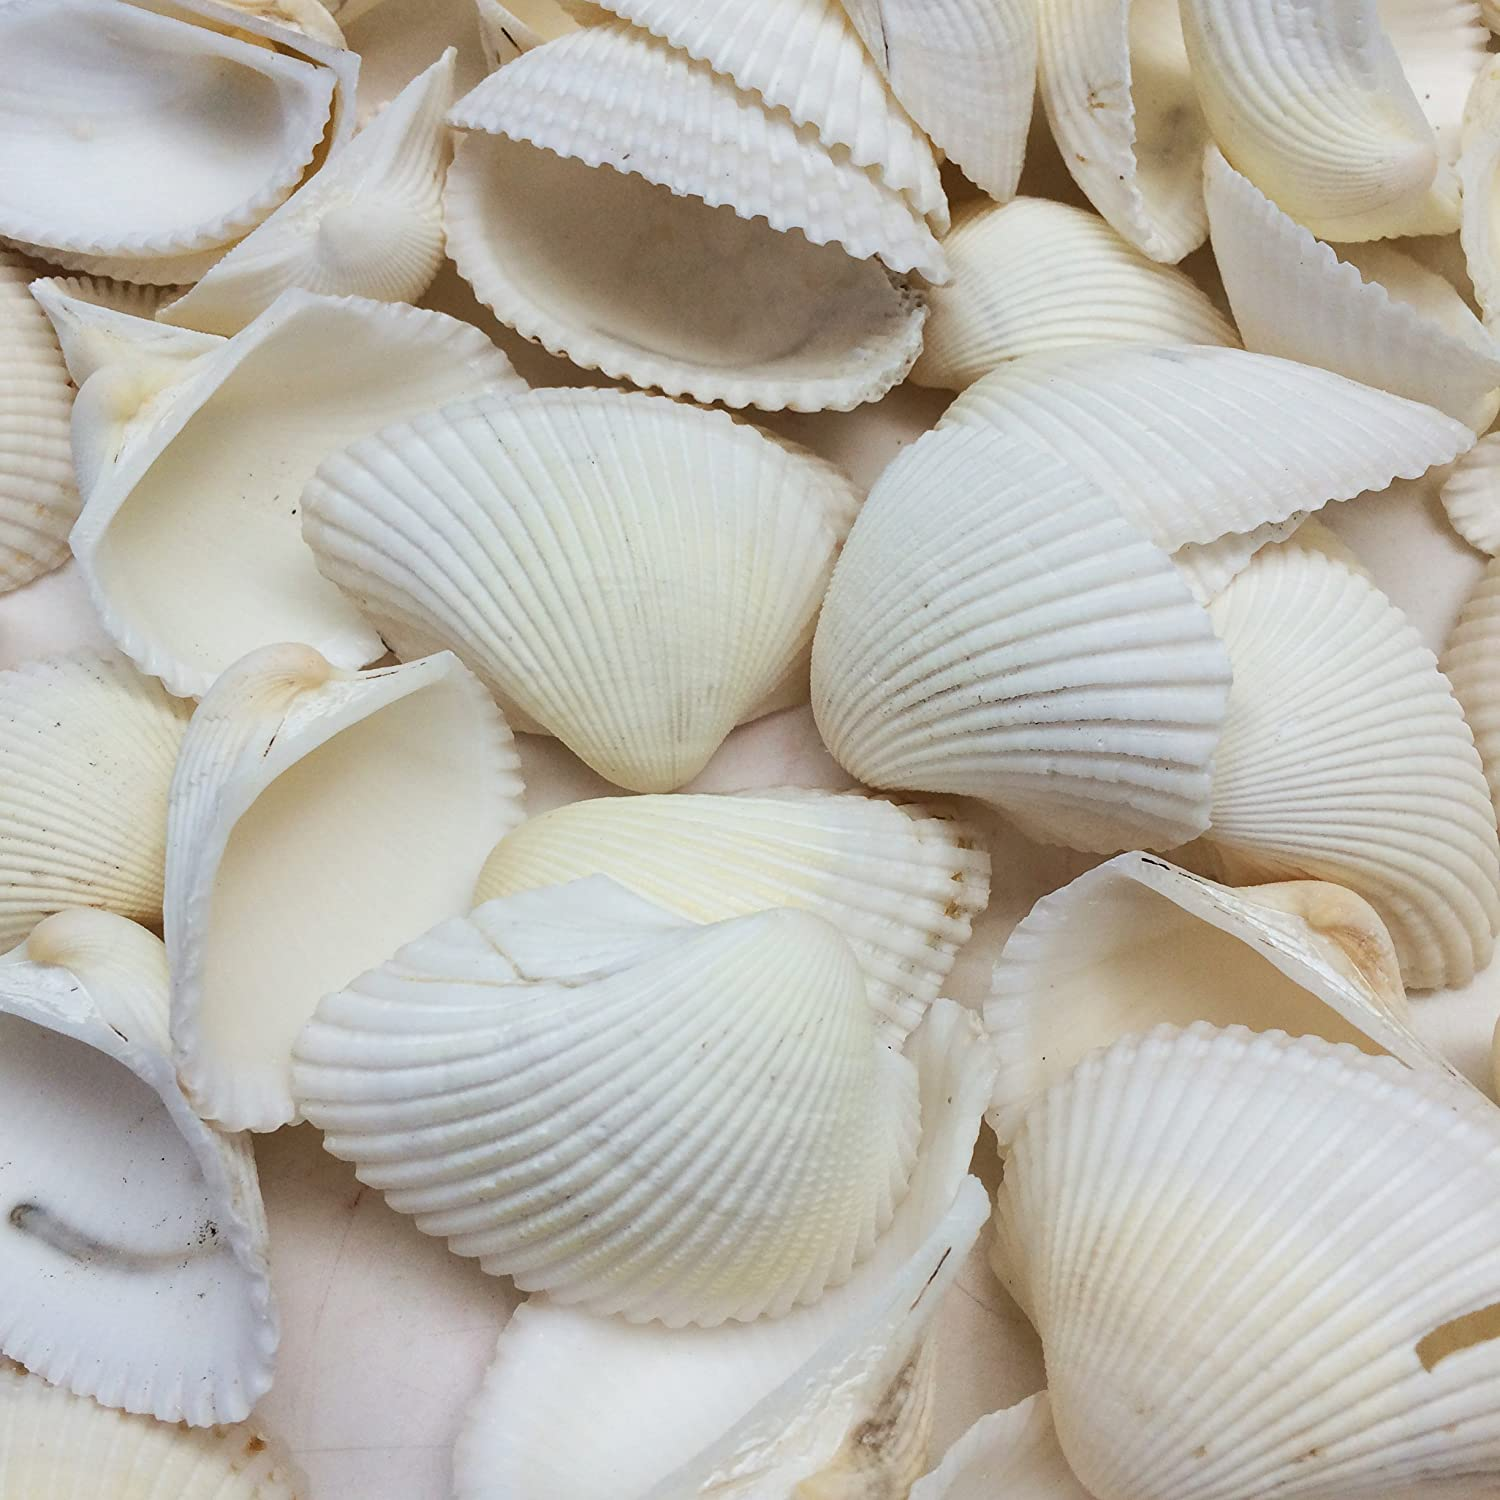 PEPPERLONELY White Ark Clam Sea Shells, 500 Gram Approx. 65+PC Shells, 1 Inch ~ 2-1/4 Inch